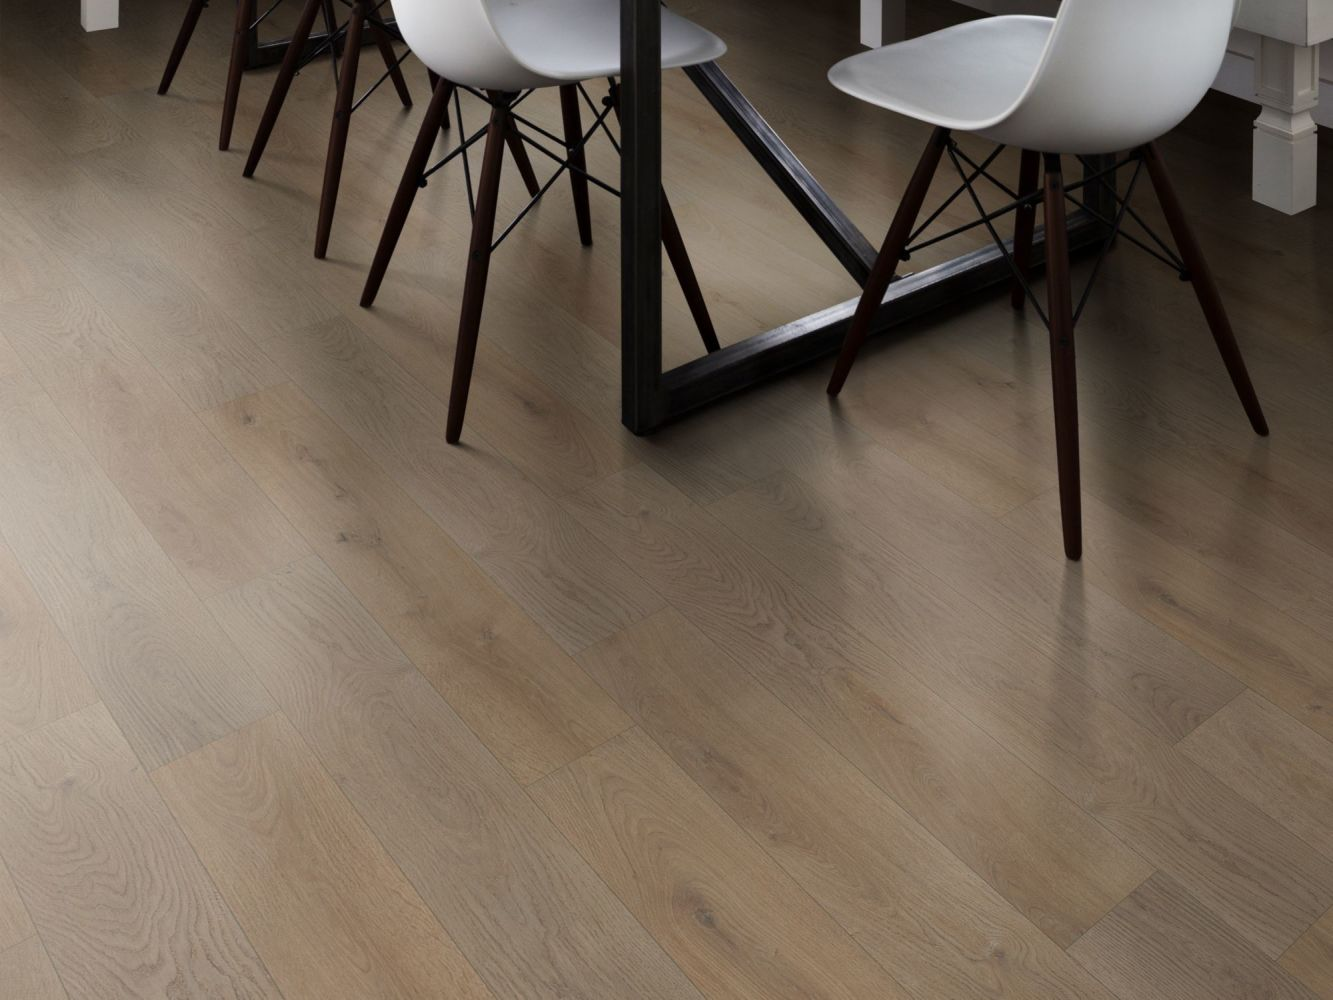 Shaw Floors Resilient Residential Distinction Plus Crafted Oak 01089_2045V